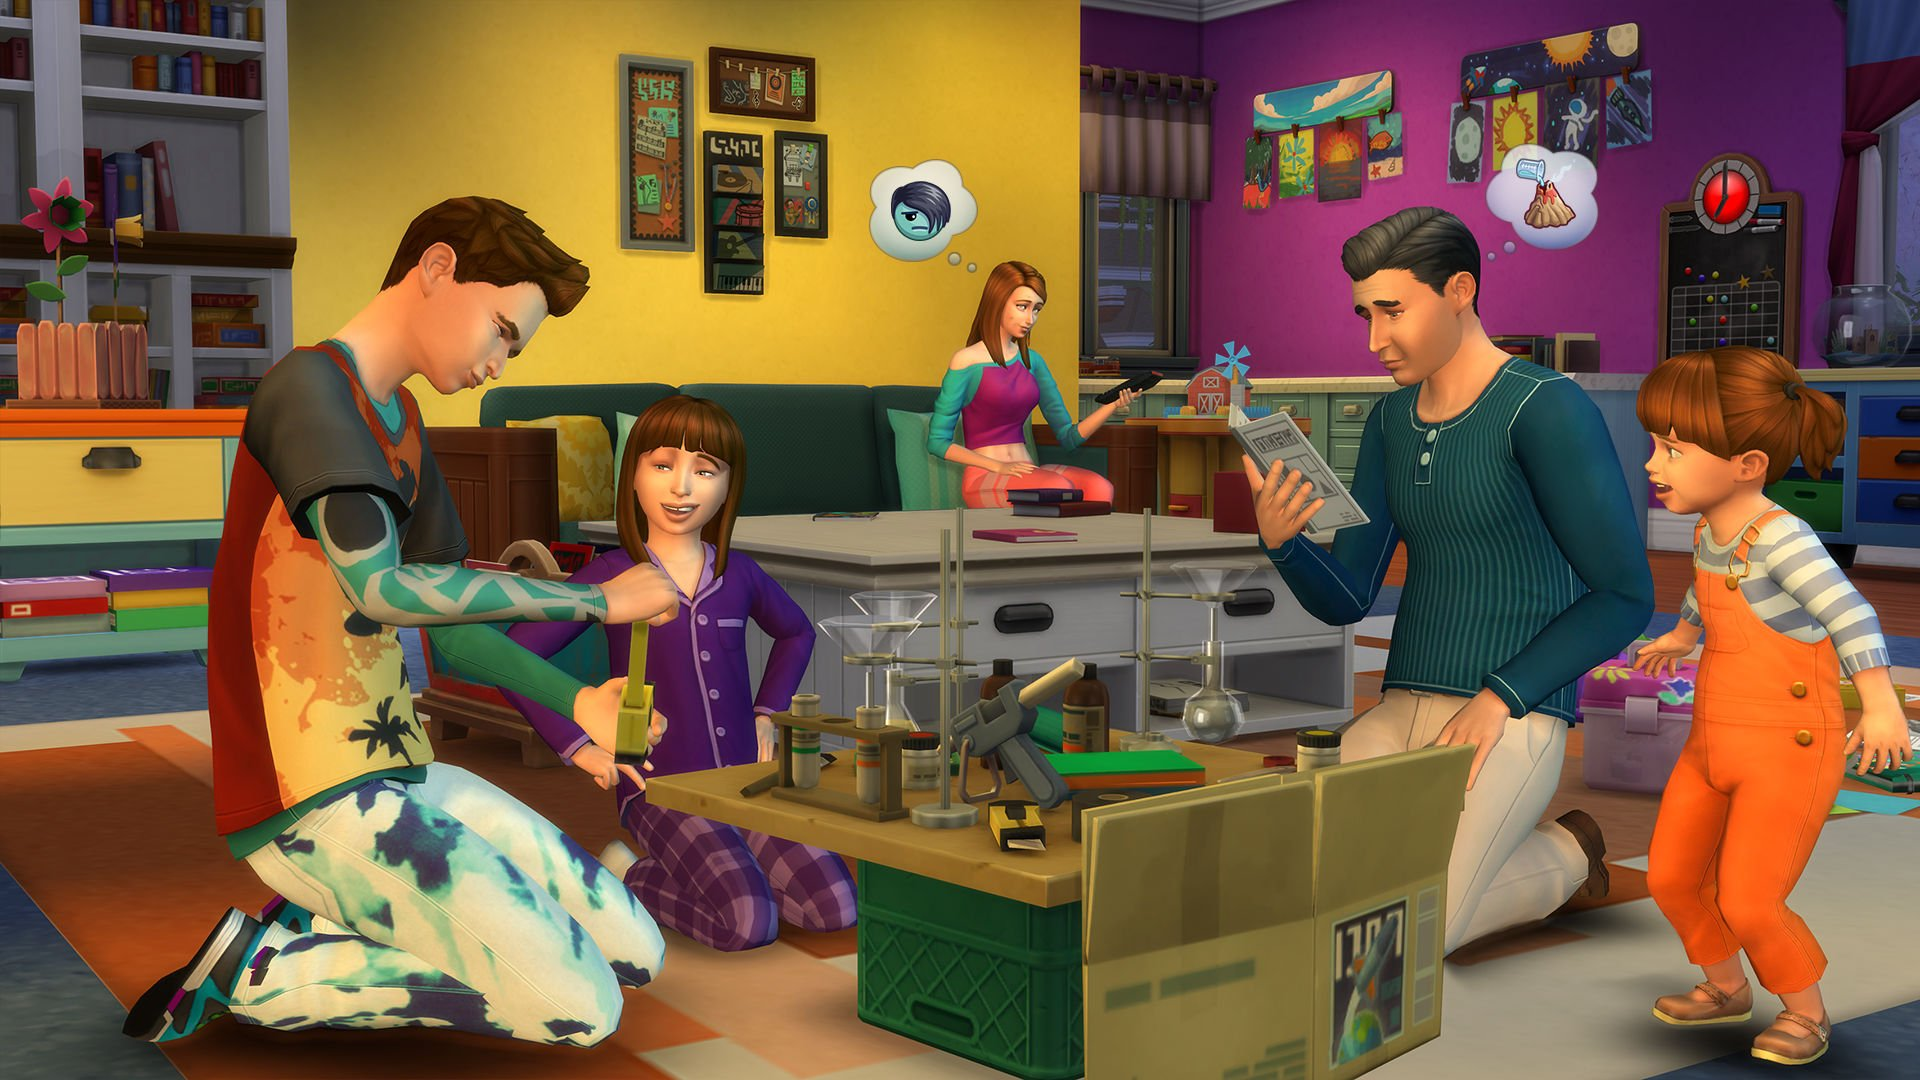 The Sims 4: Parenthood review